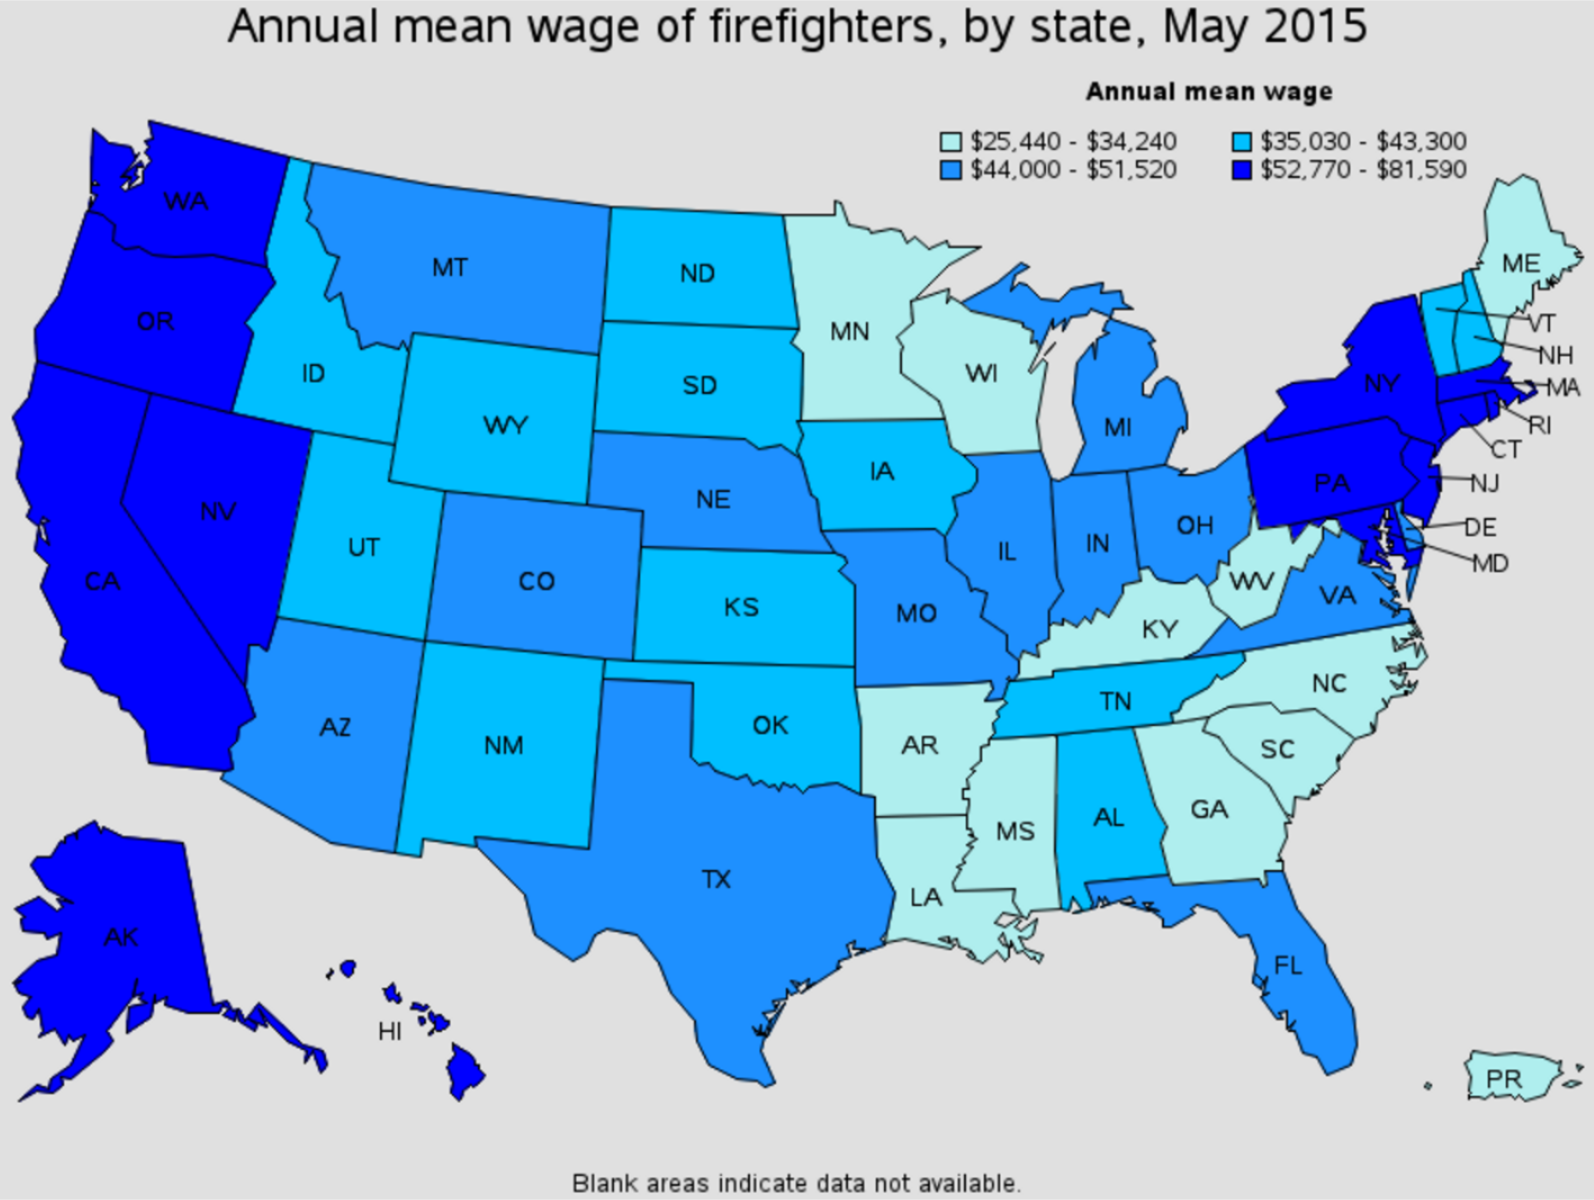 firefighter average salary by state Minneapolis Minnesota